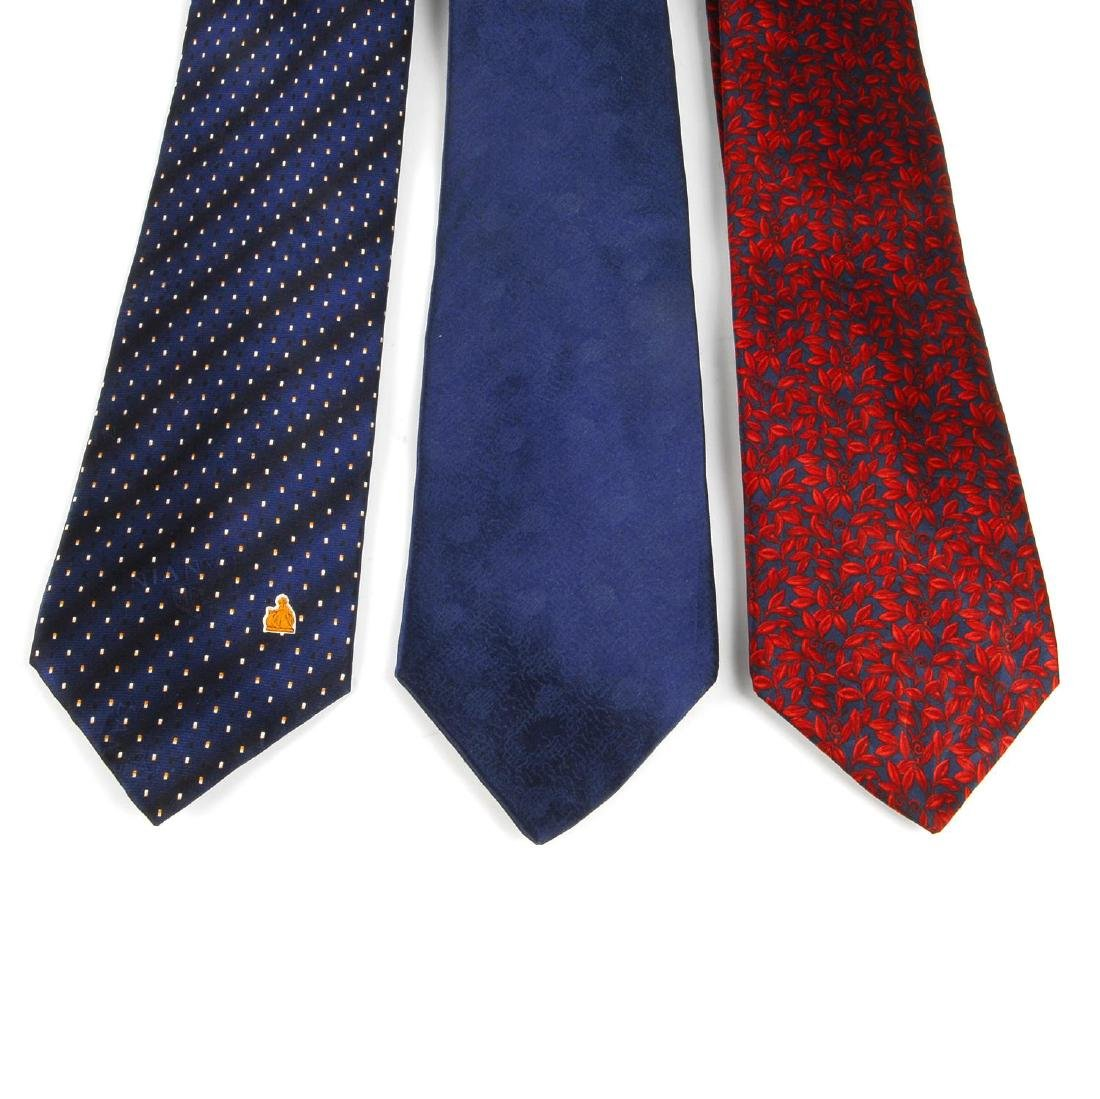 Eight ties. To include two Lanvin ties, one